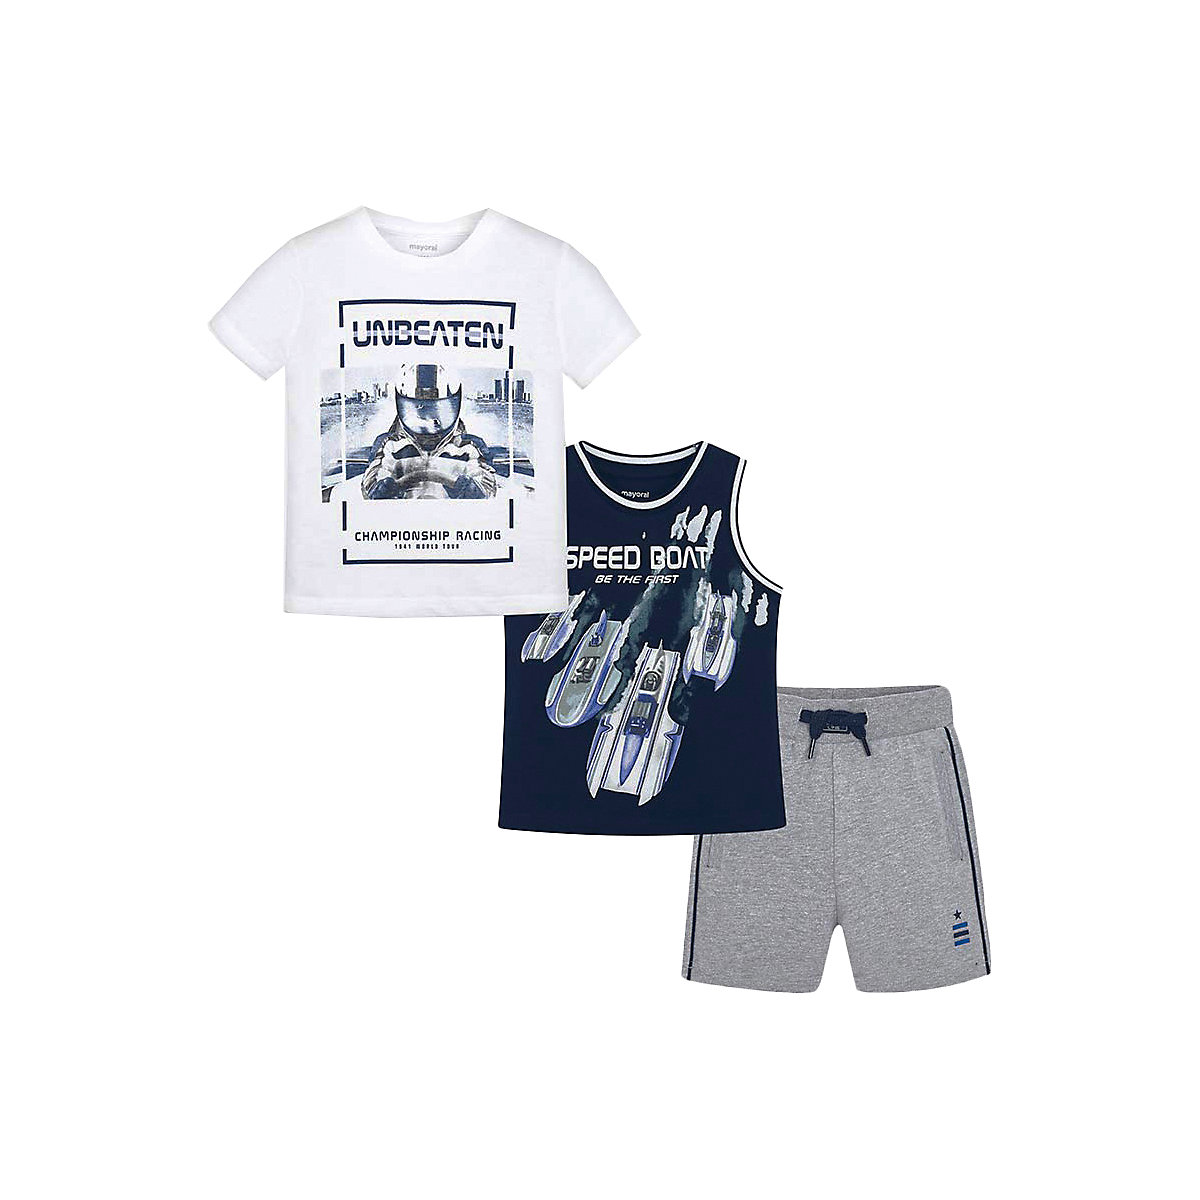 Фото - Baby's Sets MAYORAL 10678608 set of clothes for kids T-shirt legs shirt shorts girls and boys shein kiddie girls white striped side casual top and shorts two piece set clothes sets 2019 spring long sleeve kids suit set